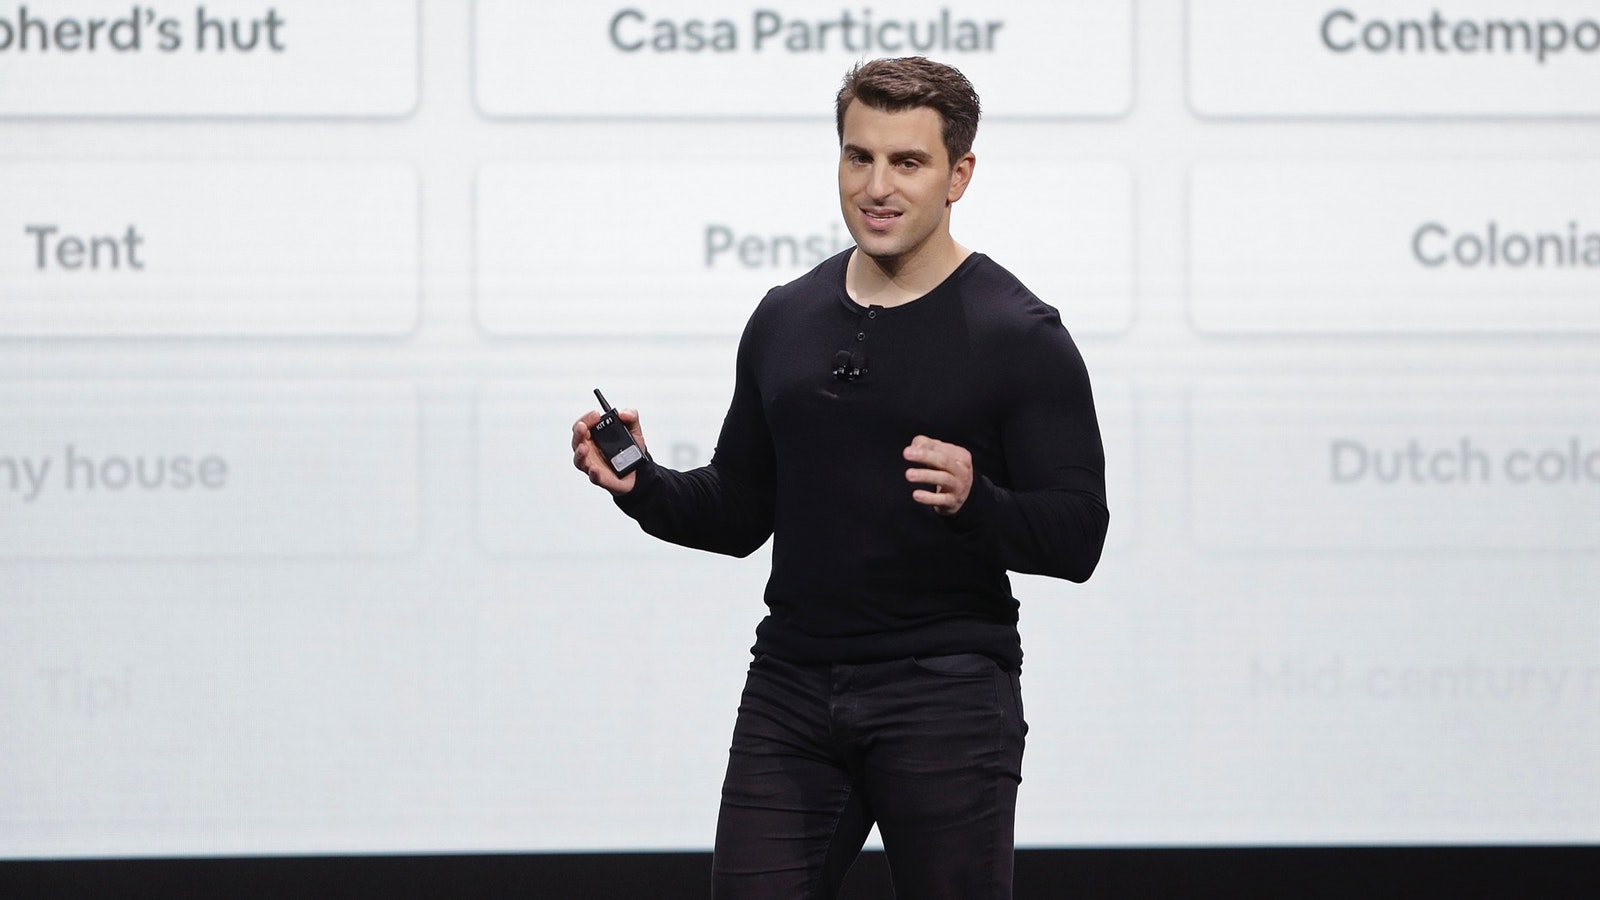 Airbnb CEO Brian Chesky speaking at an event in San Francisco in February. Photo: AP